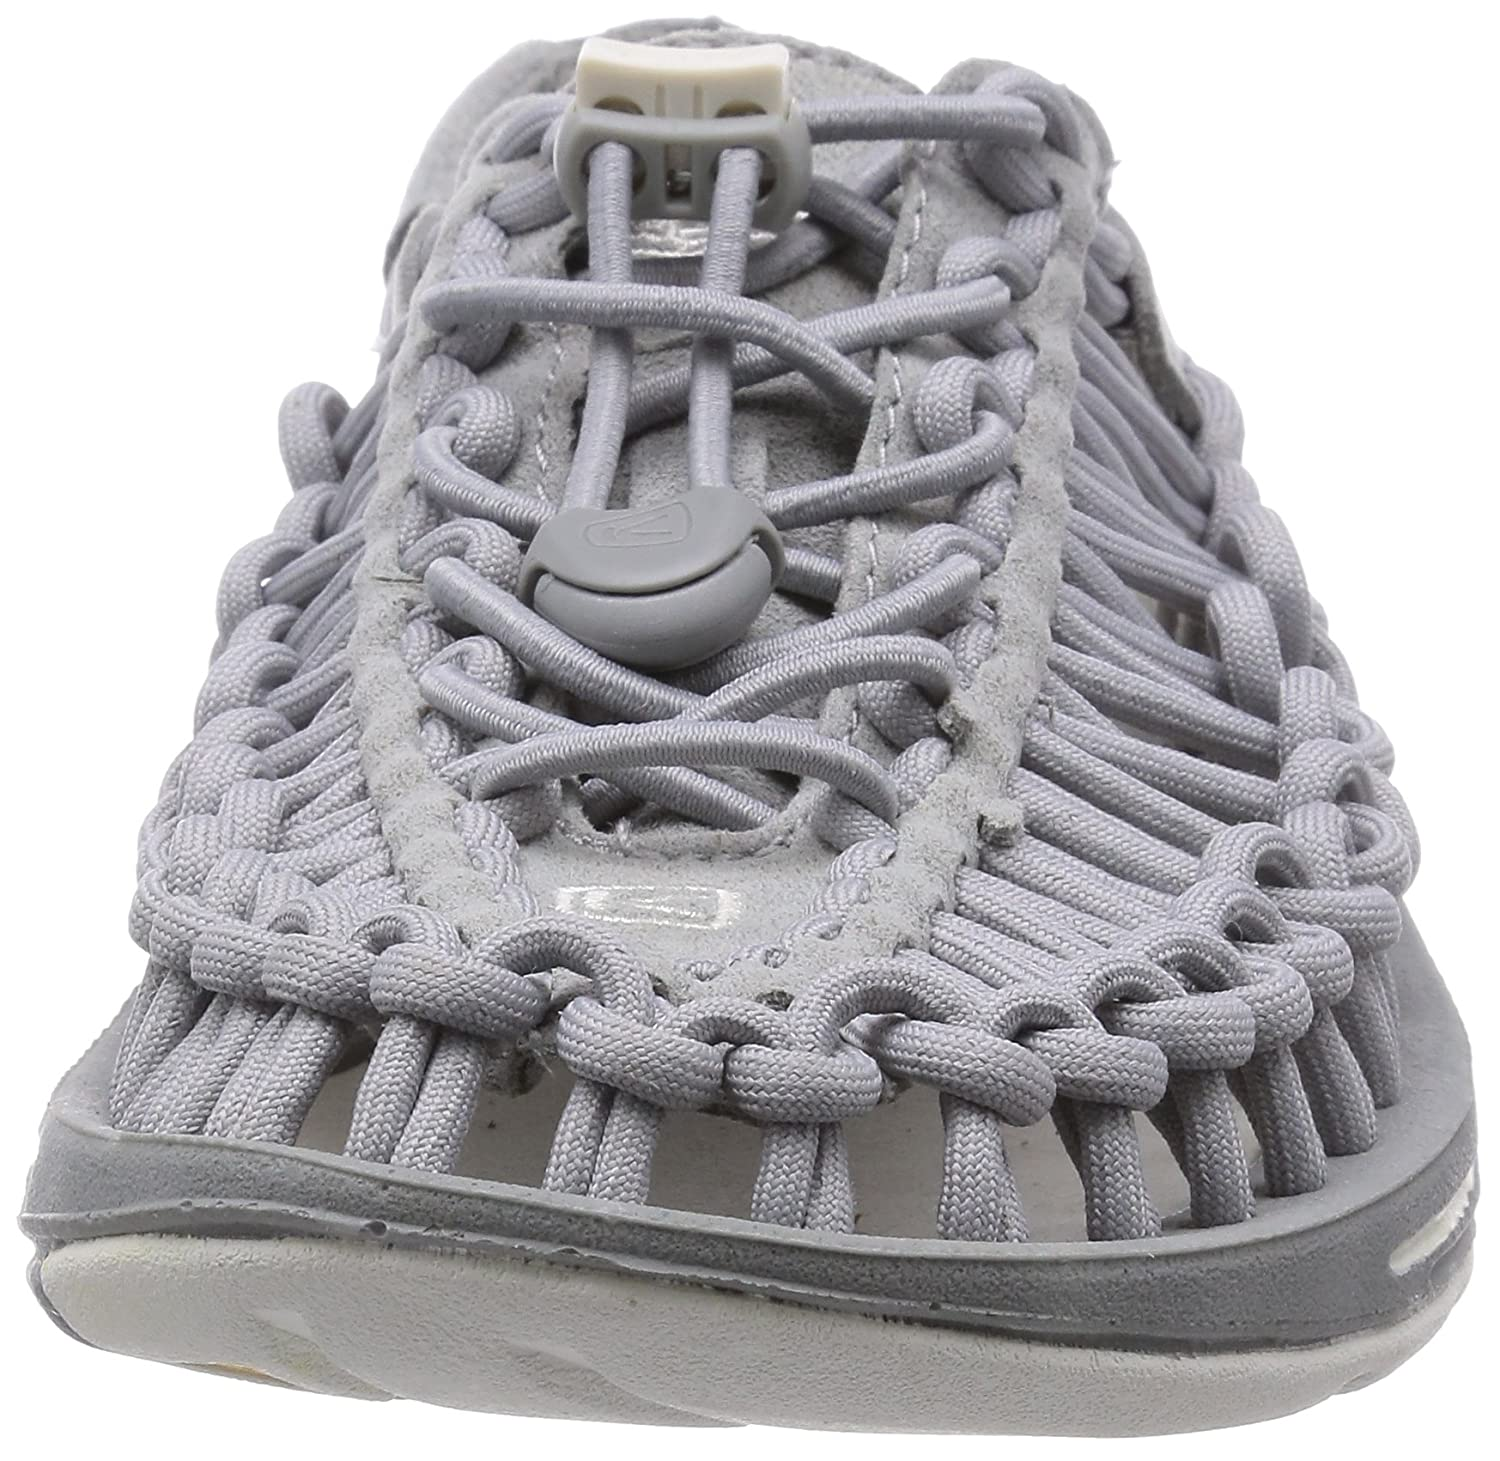 KEEN Women's Uneek M 8MM Sandal B00M0DOZ6K 8 M Uneek US|Neutral Gray/Vapor 94d517